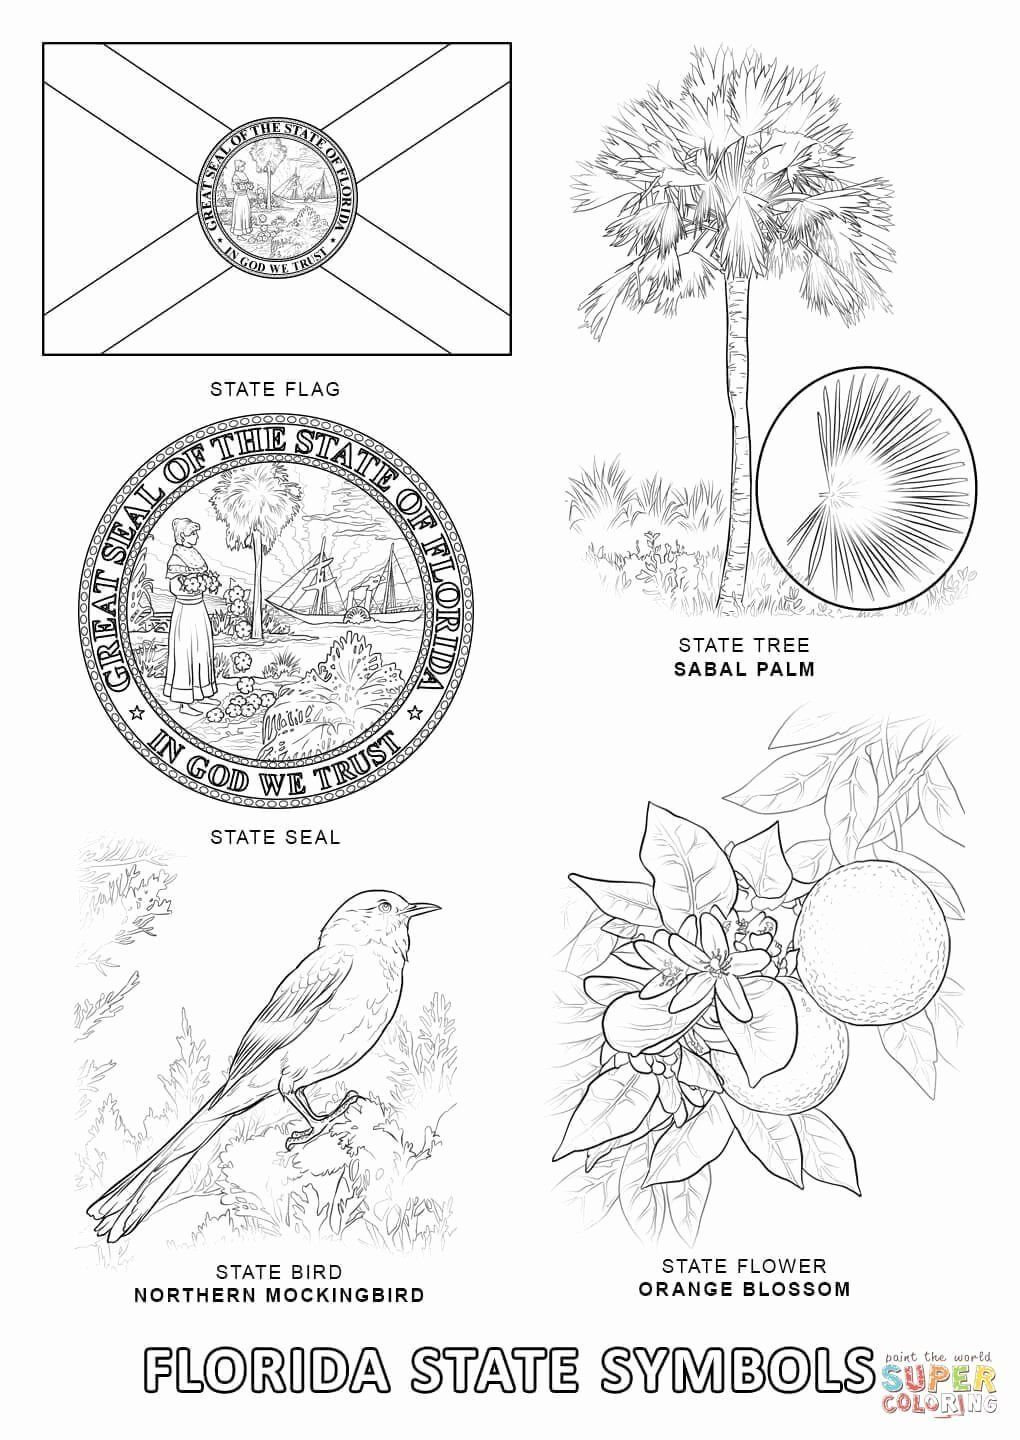 Easter Coloring Pages 40 Printable Easter Coloring Pages For Kids Boys Girls Teens Easter Egg Hunt Rabbit Bunny Easter Party Activity In 2021 State Symbols Flag Coloring Pages Bird Coloring Pages